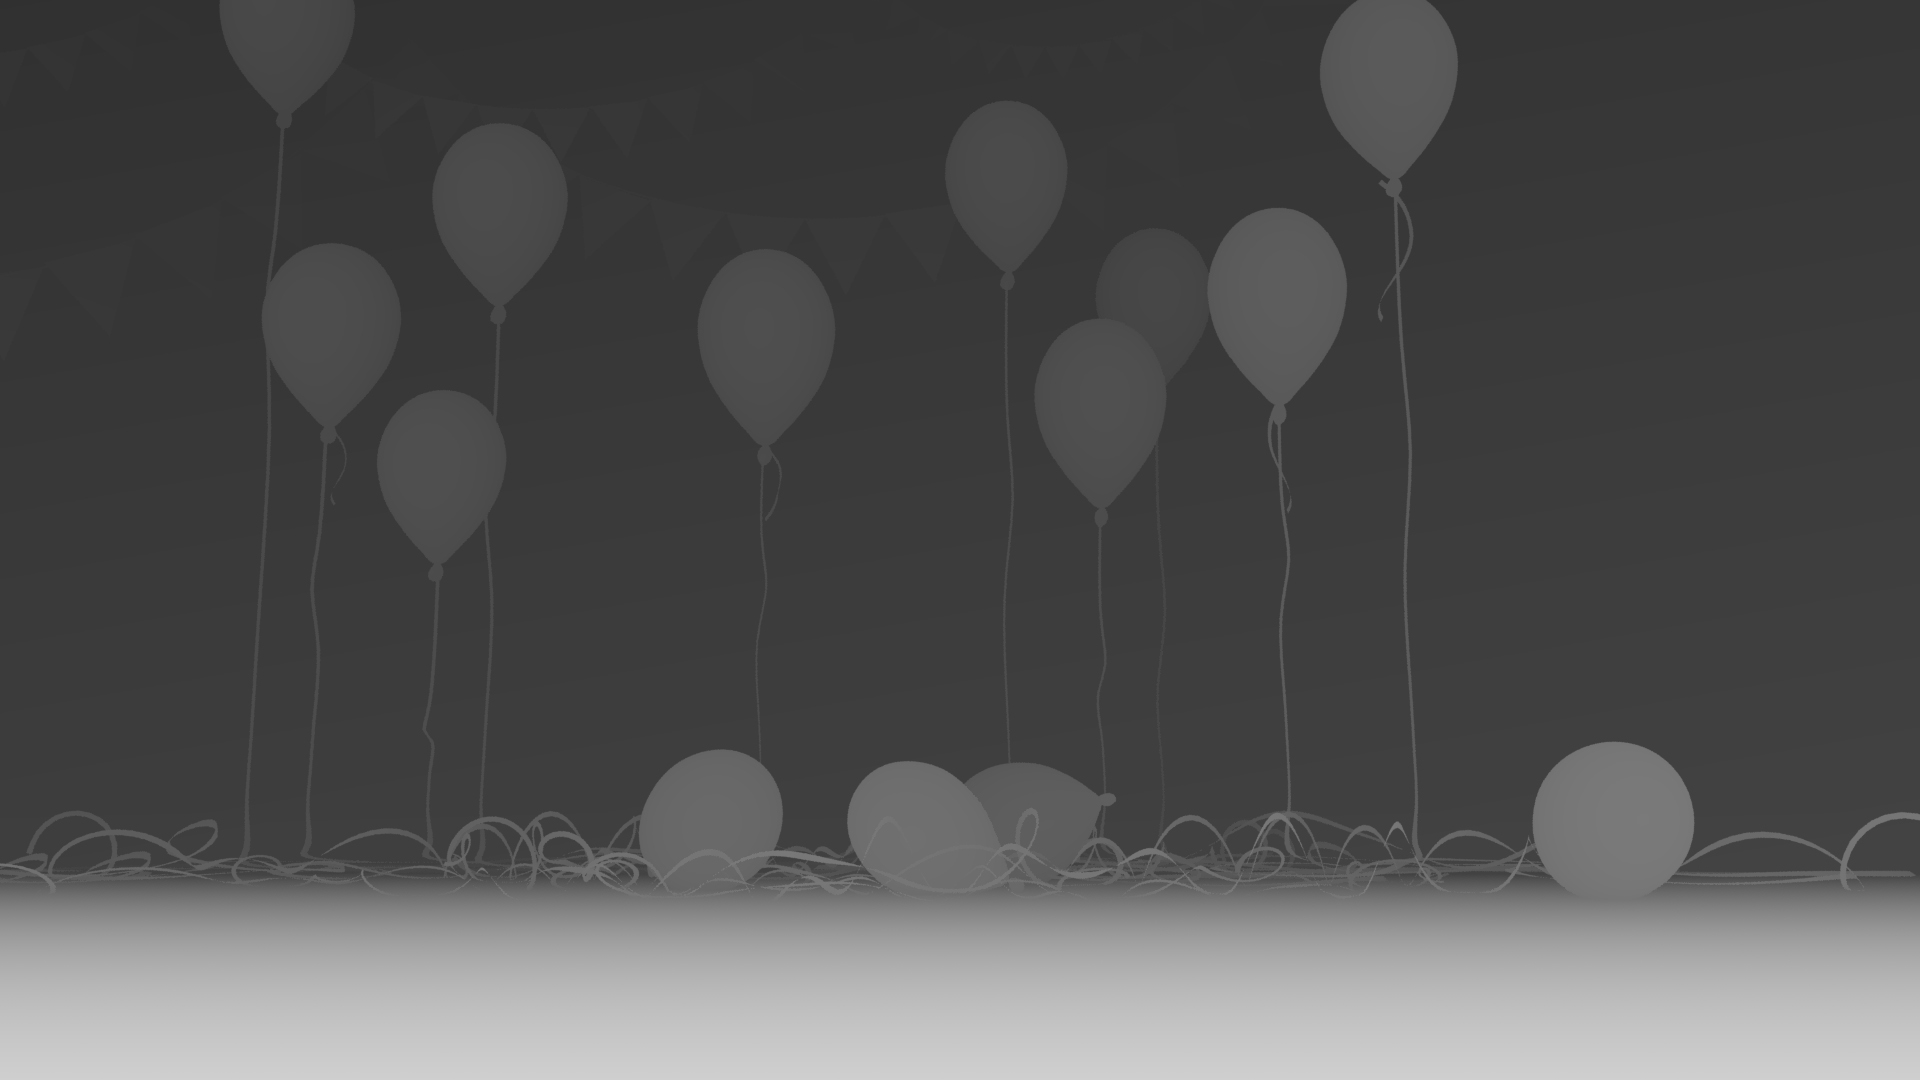 Balloons Zdepth by Ronald Fong